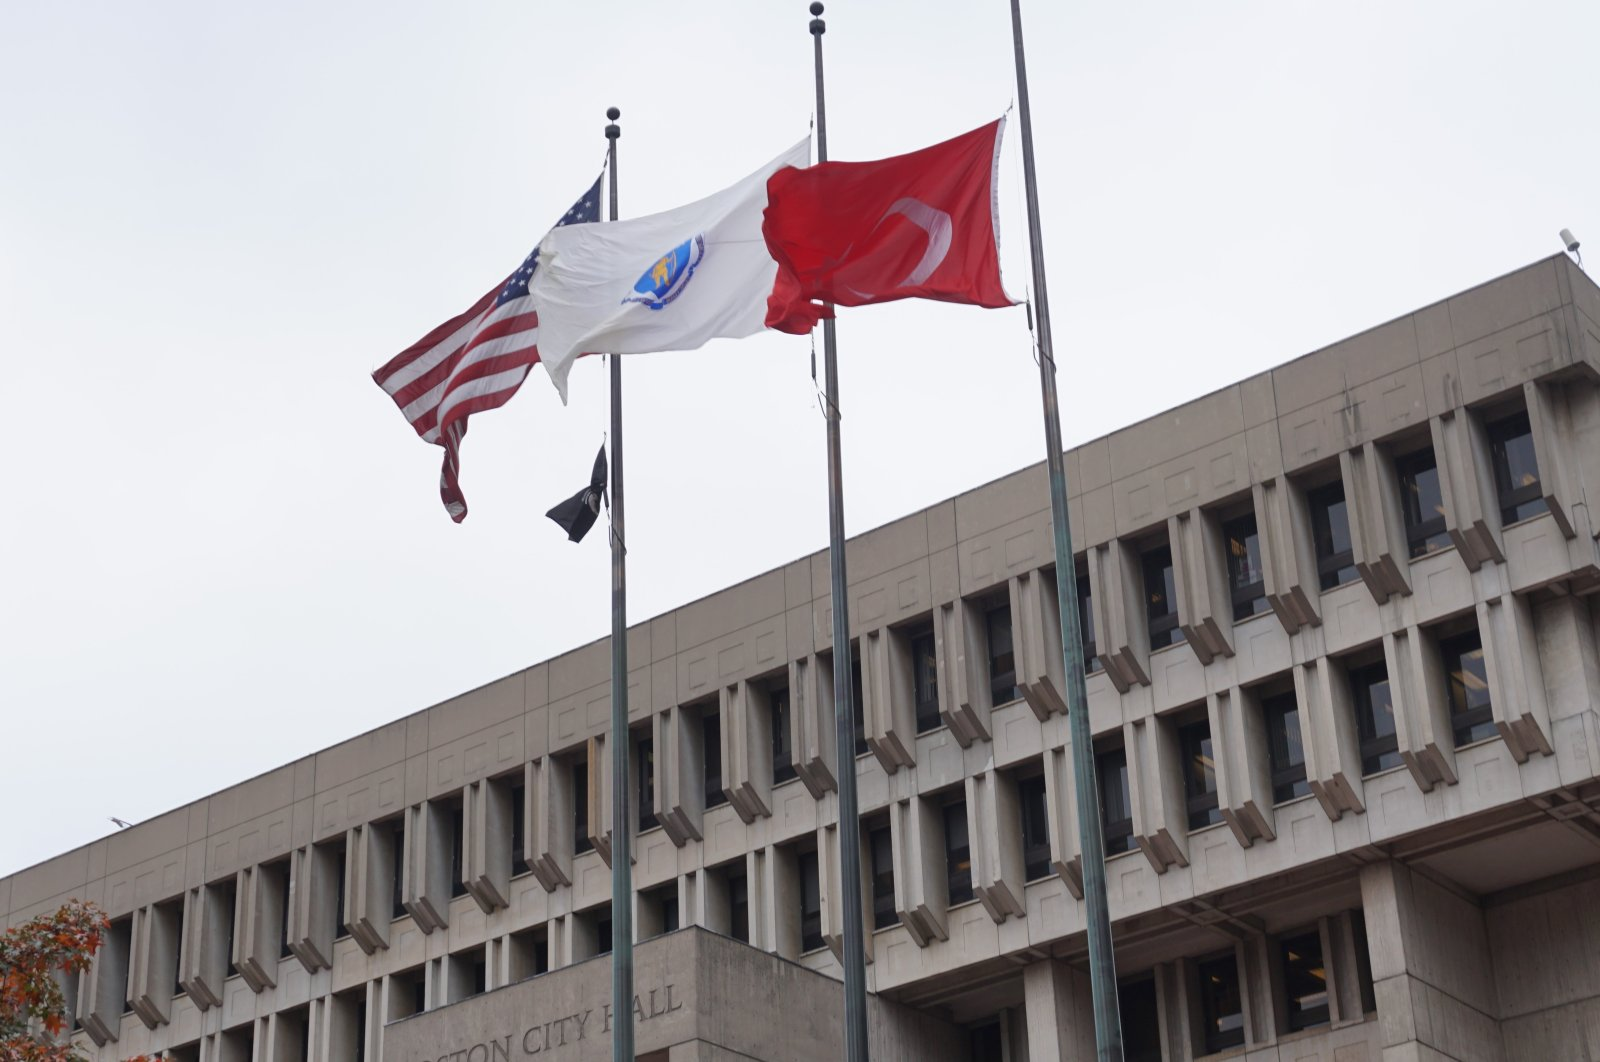 The festival started with the hoisting of the Turkish flag in the Boston City Hall Square, U.S., Oct. 30, 2020. (AA PHOTO)